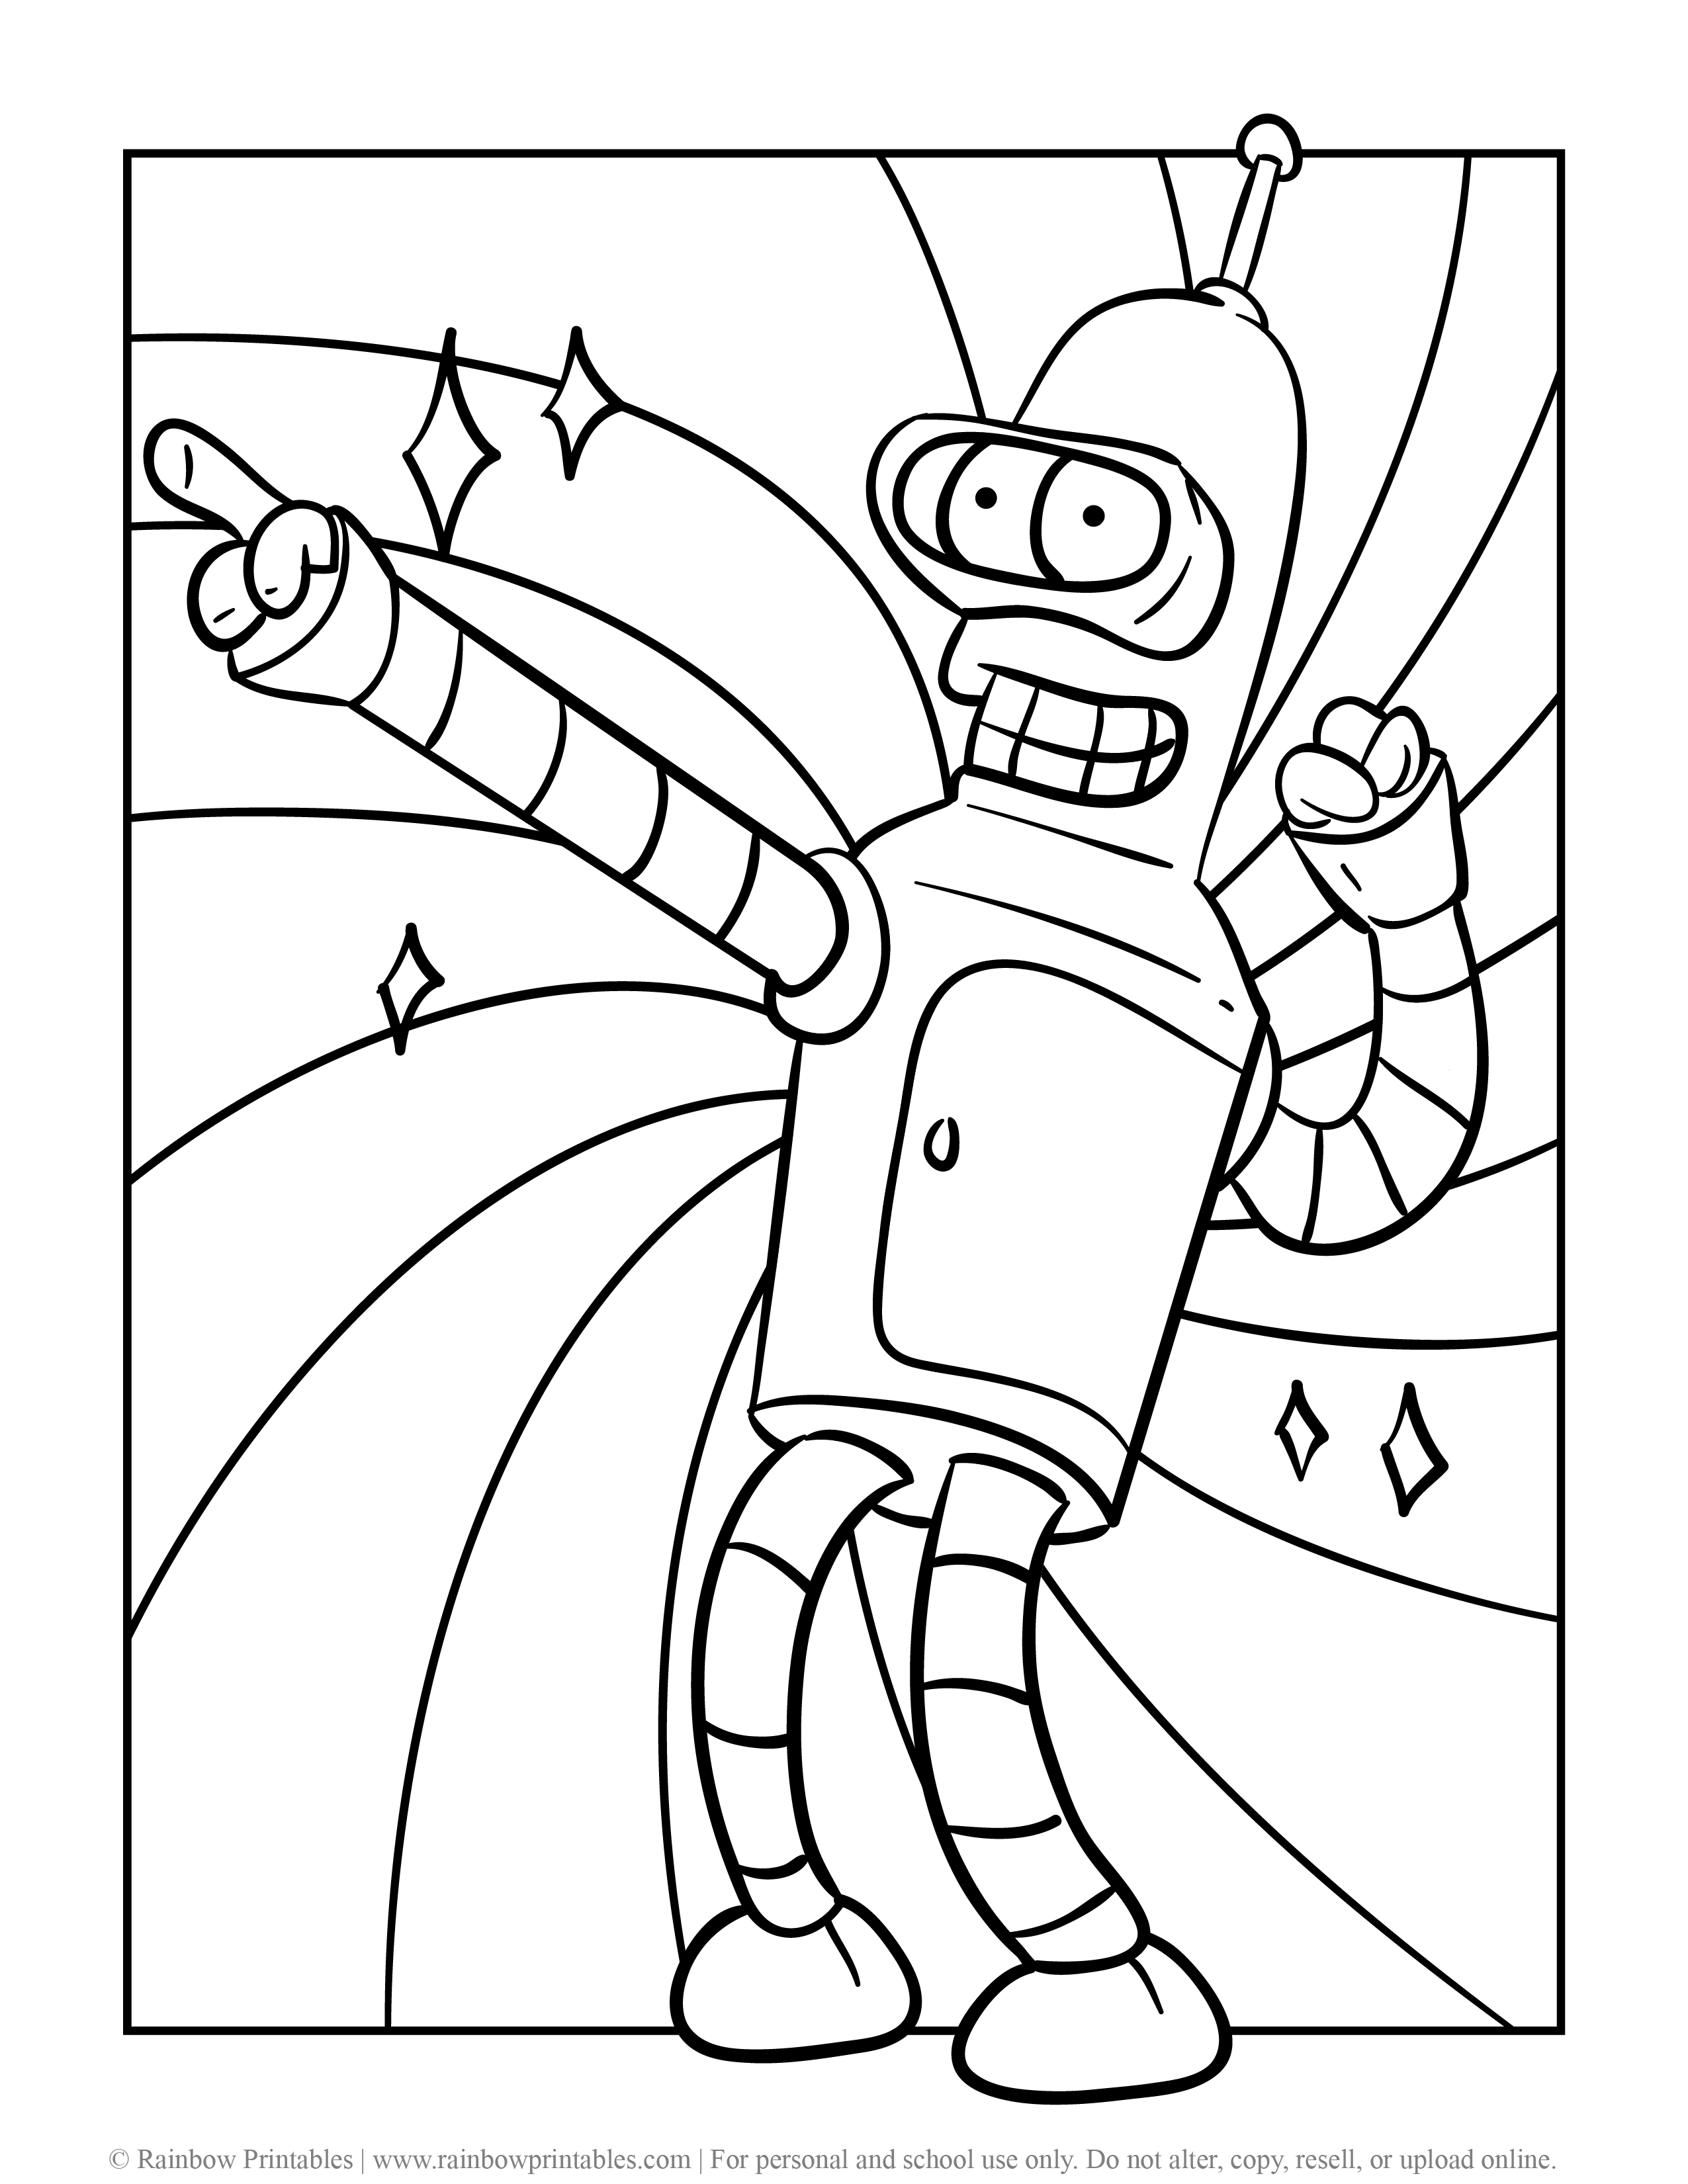 DANCING BENDER rodriguez Futurama With a Flower Funny Space Ship Robot Coloring Page Fanart